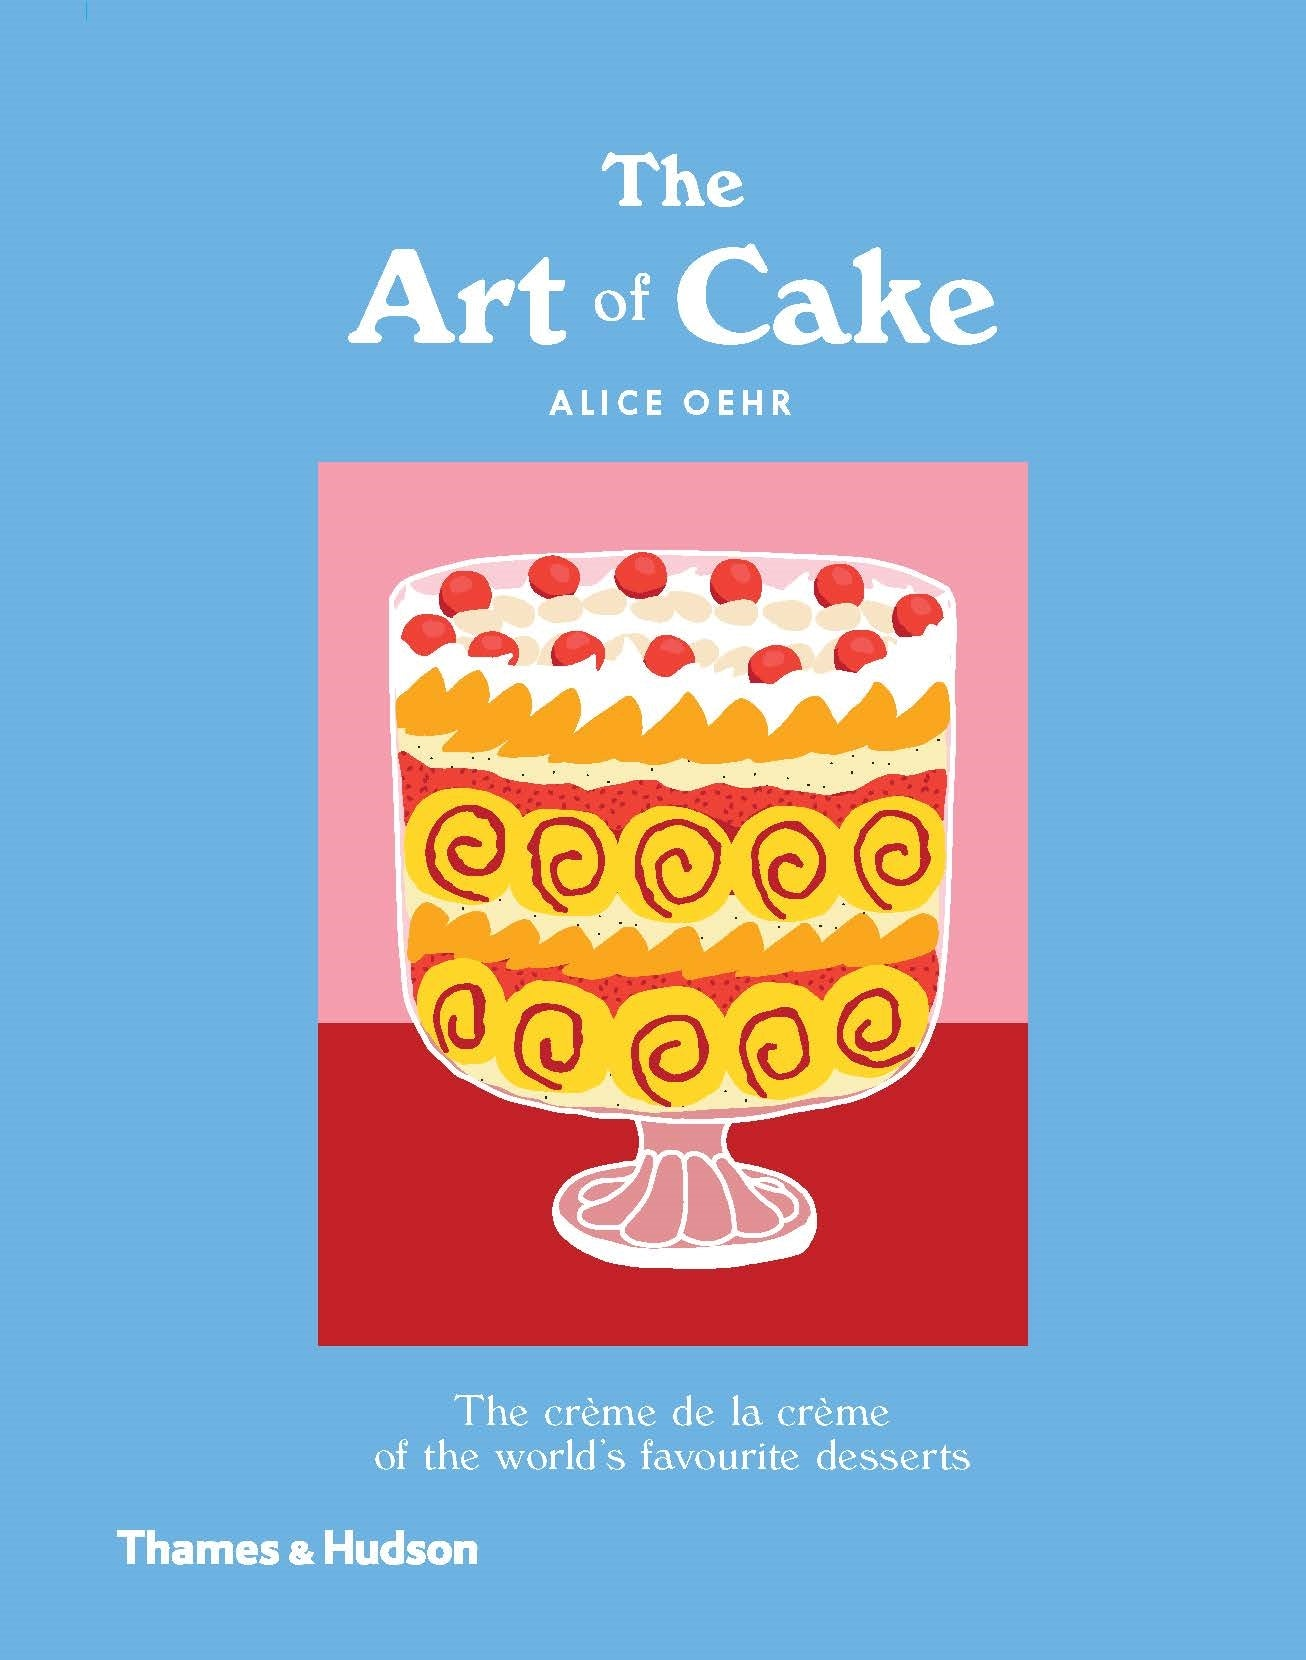 Art of Cake: The Creme de la Creme of the World's Favourite Desserts